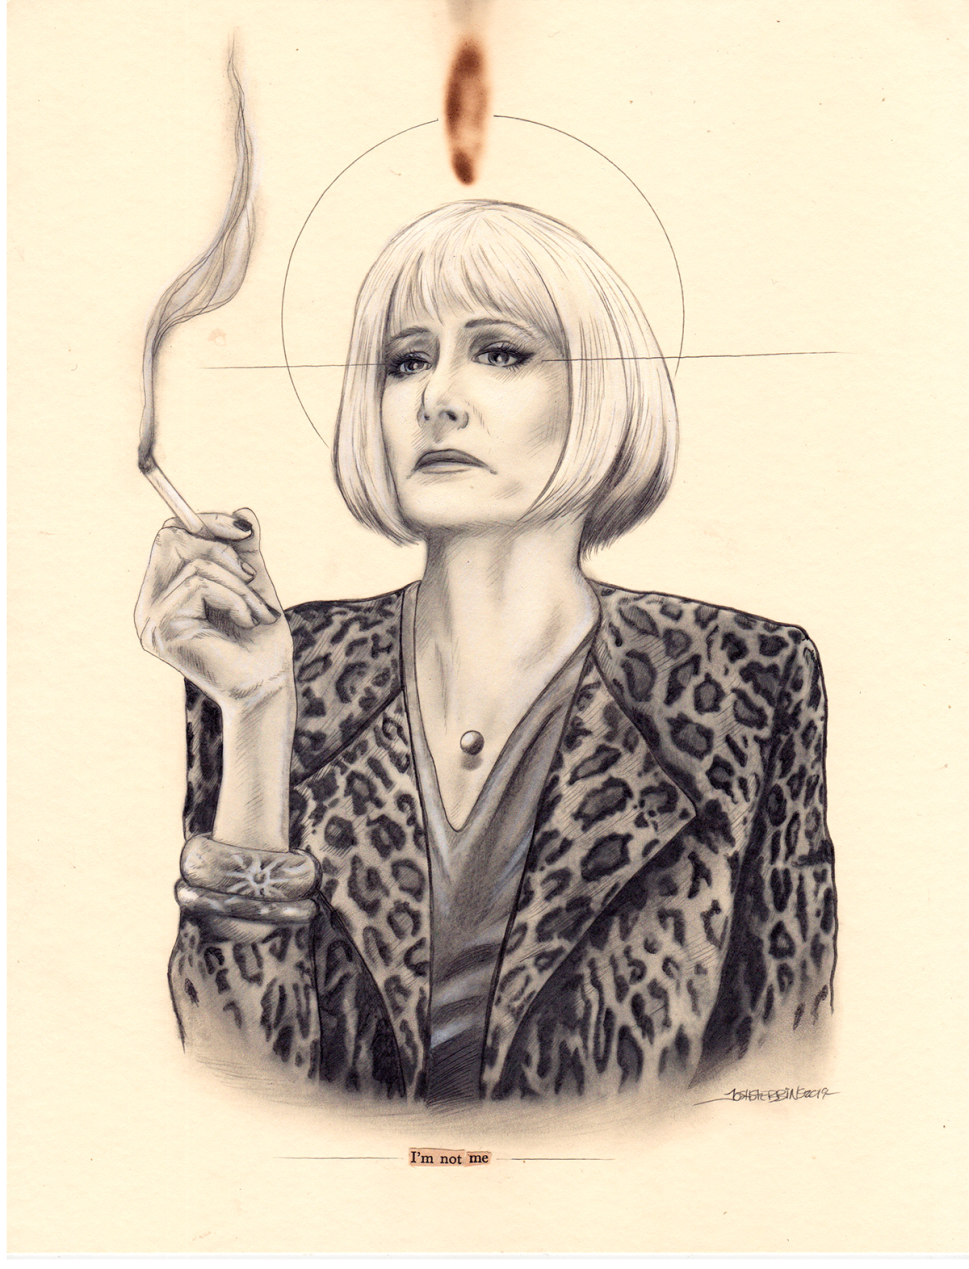 An Exhibition of 'Twin Peaks'-Themed Art Is Being Sold for a Good Cause